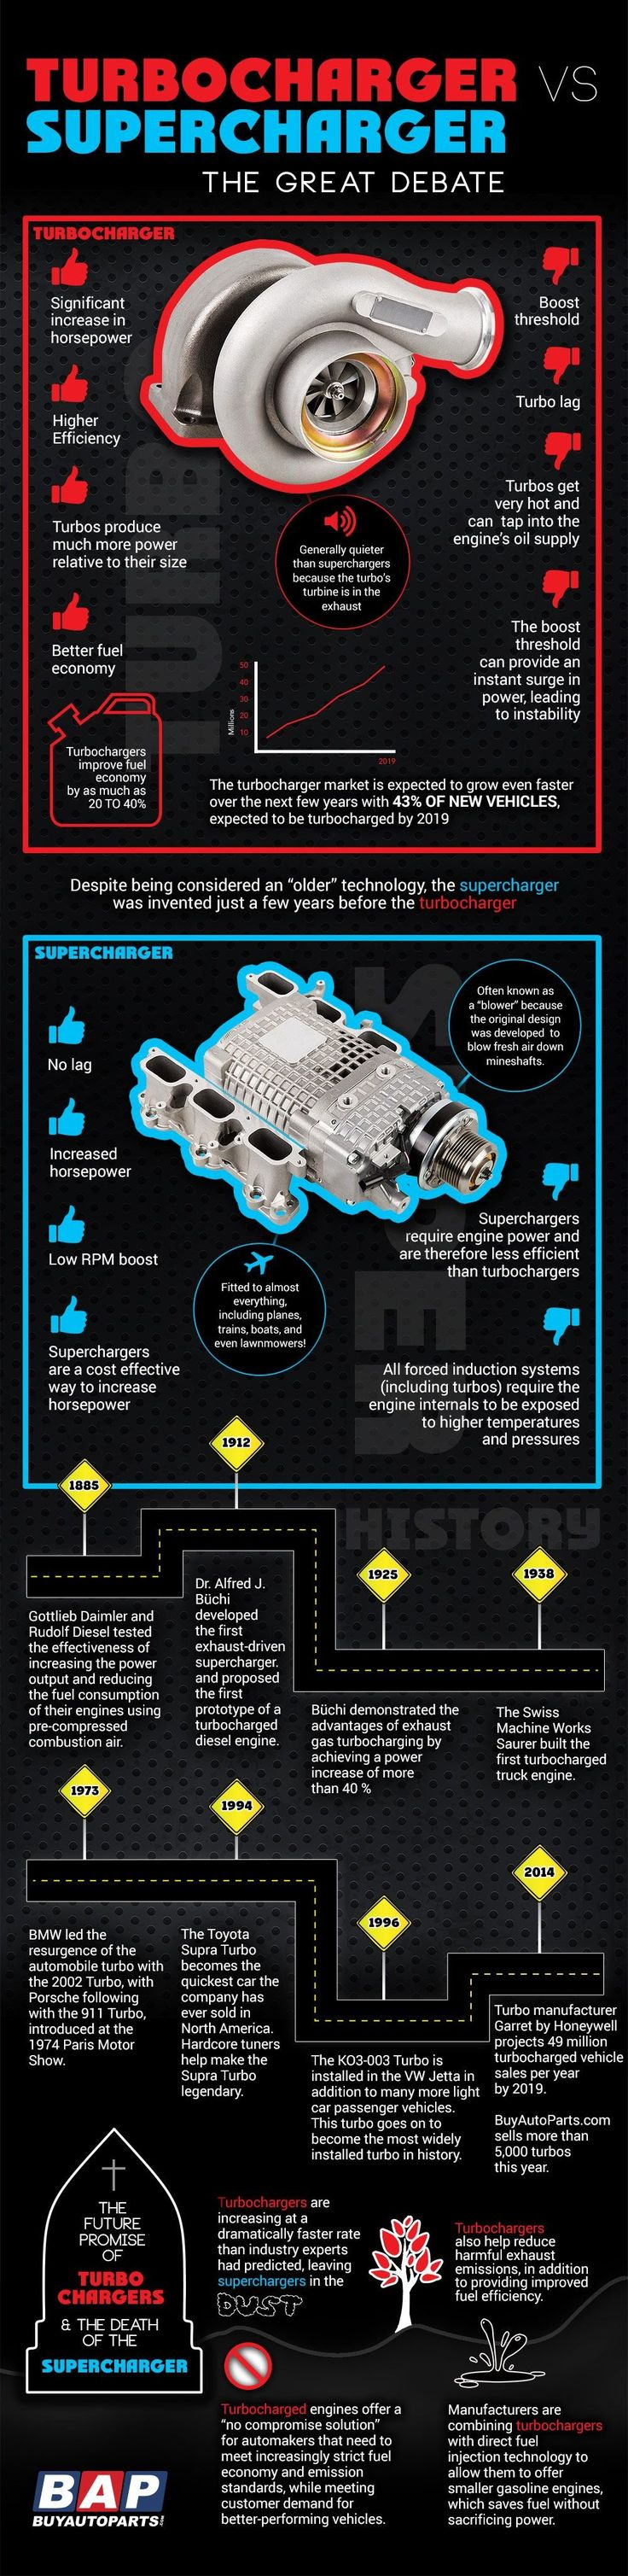 7 Best Manual Gears Images On Pinterest Transmission Car Single Disc Brakerepair And Parts Replacement Diagram Turbo Vs Supercharger